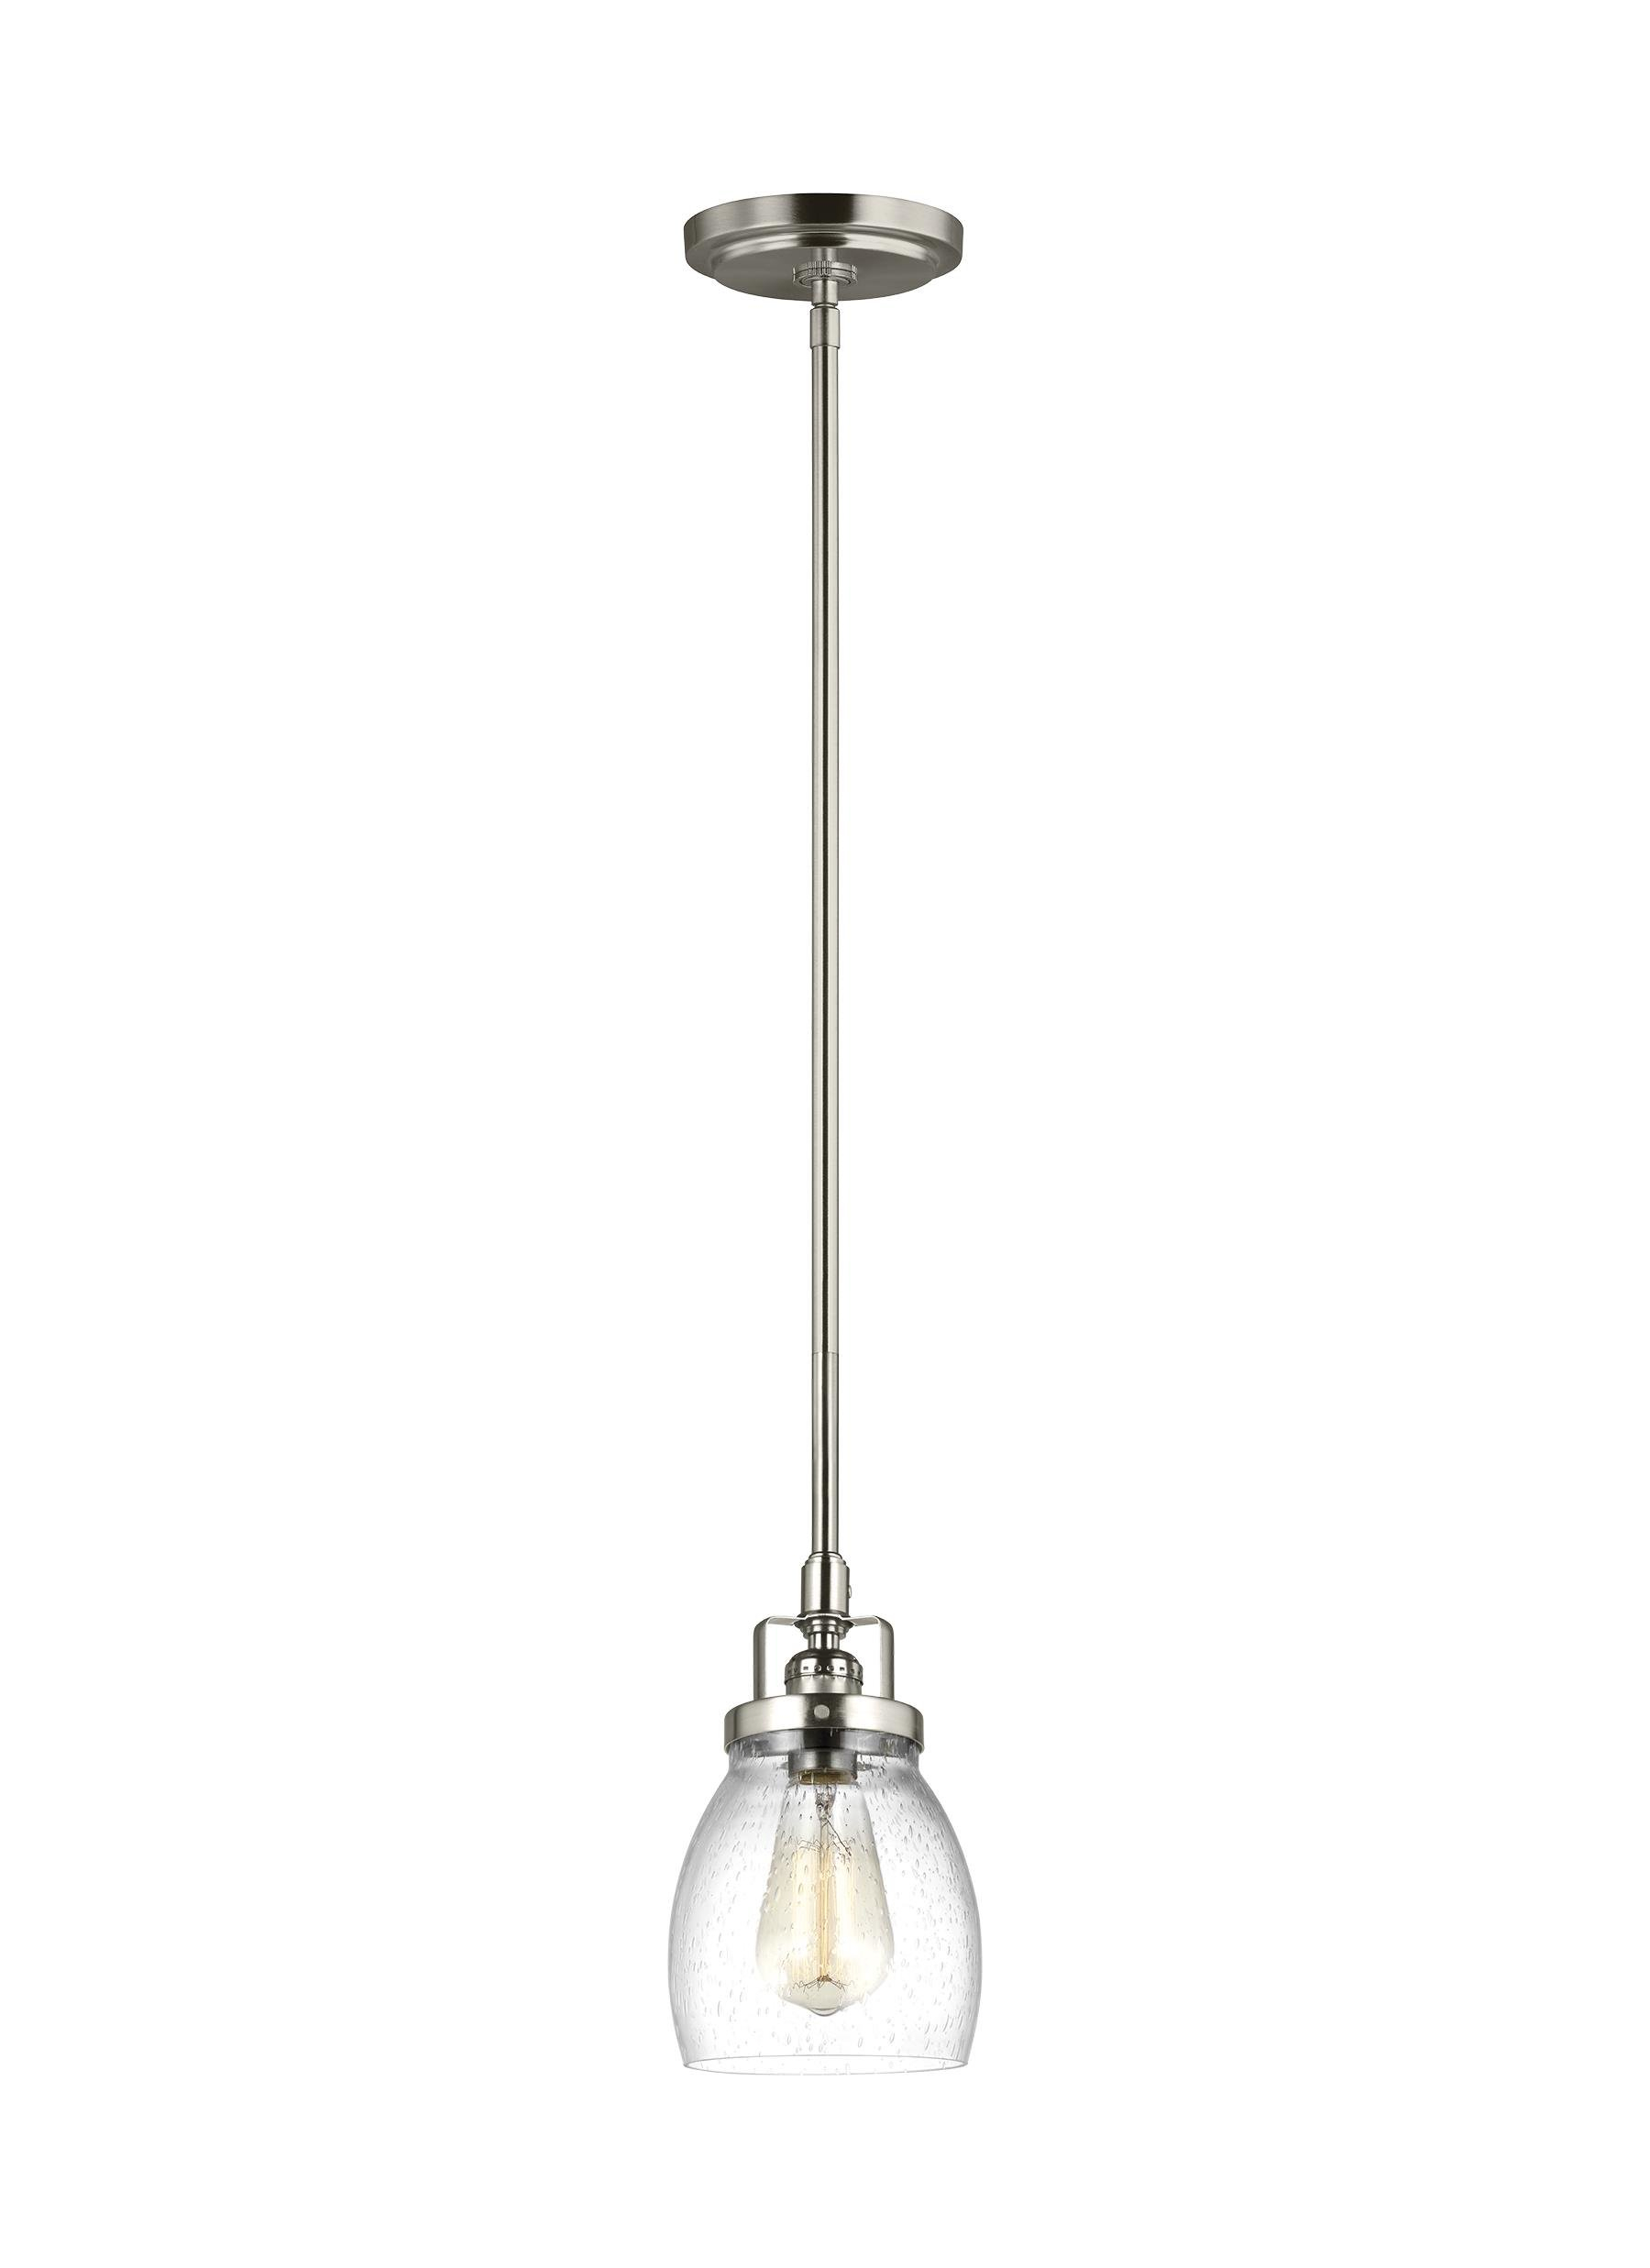 Houon 1 Light Cone Bell Pendant & Reviews | Joss & Main For Neal 1 Light Single Teardrop Pendants (View 24 of 30)